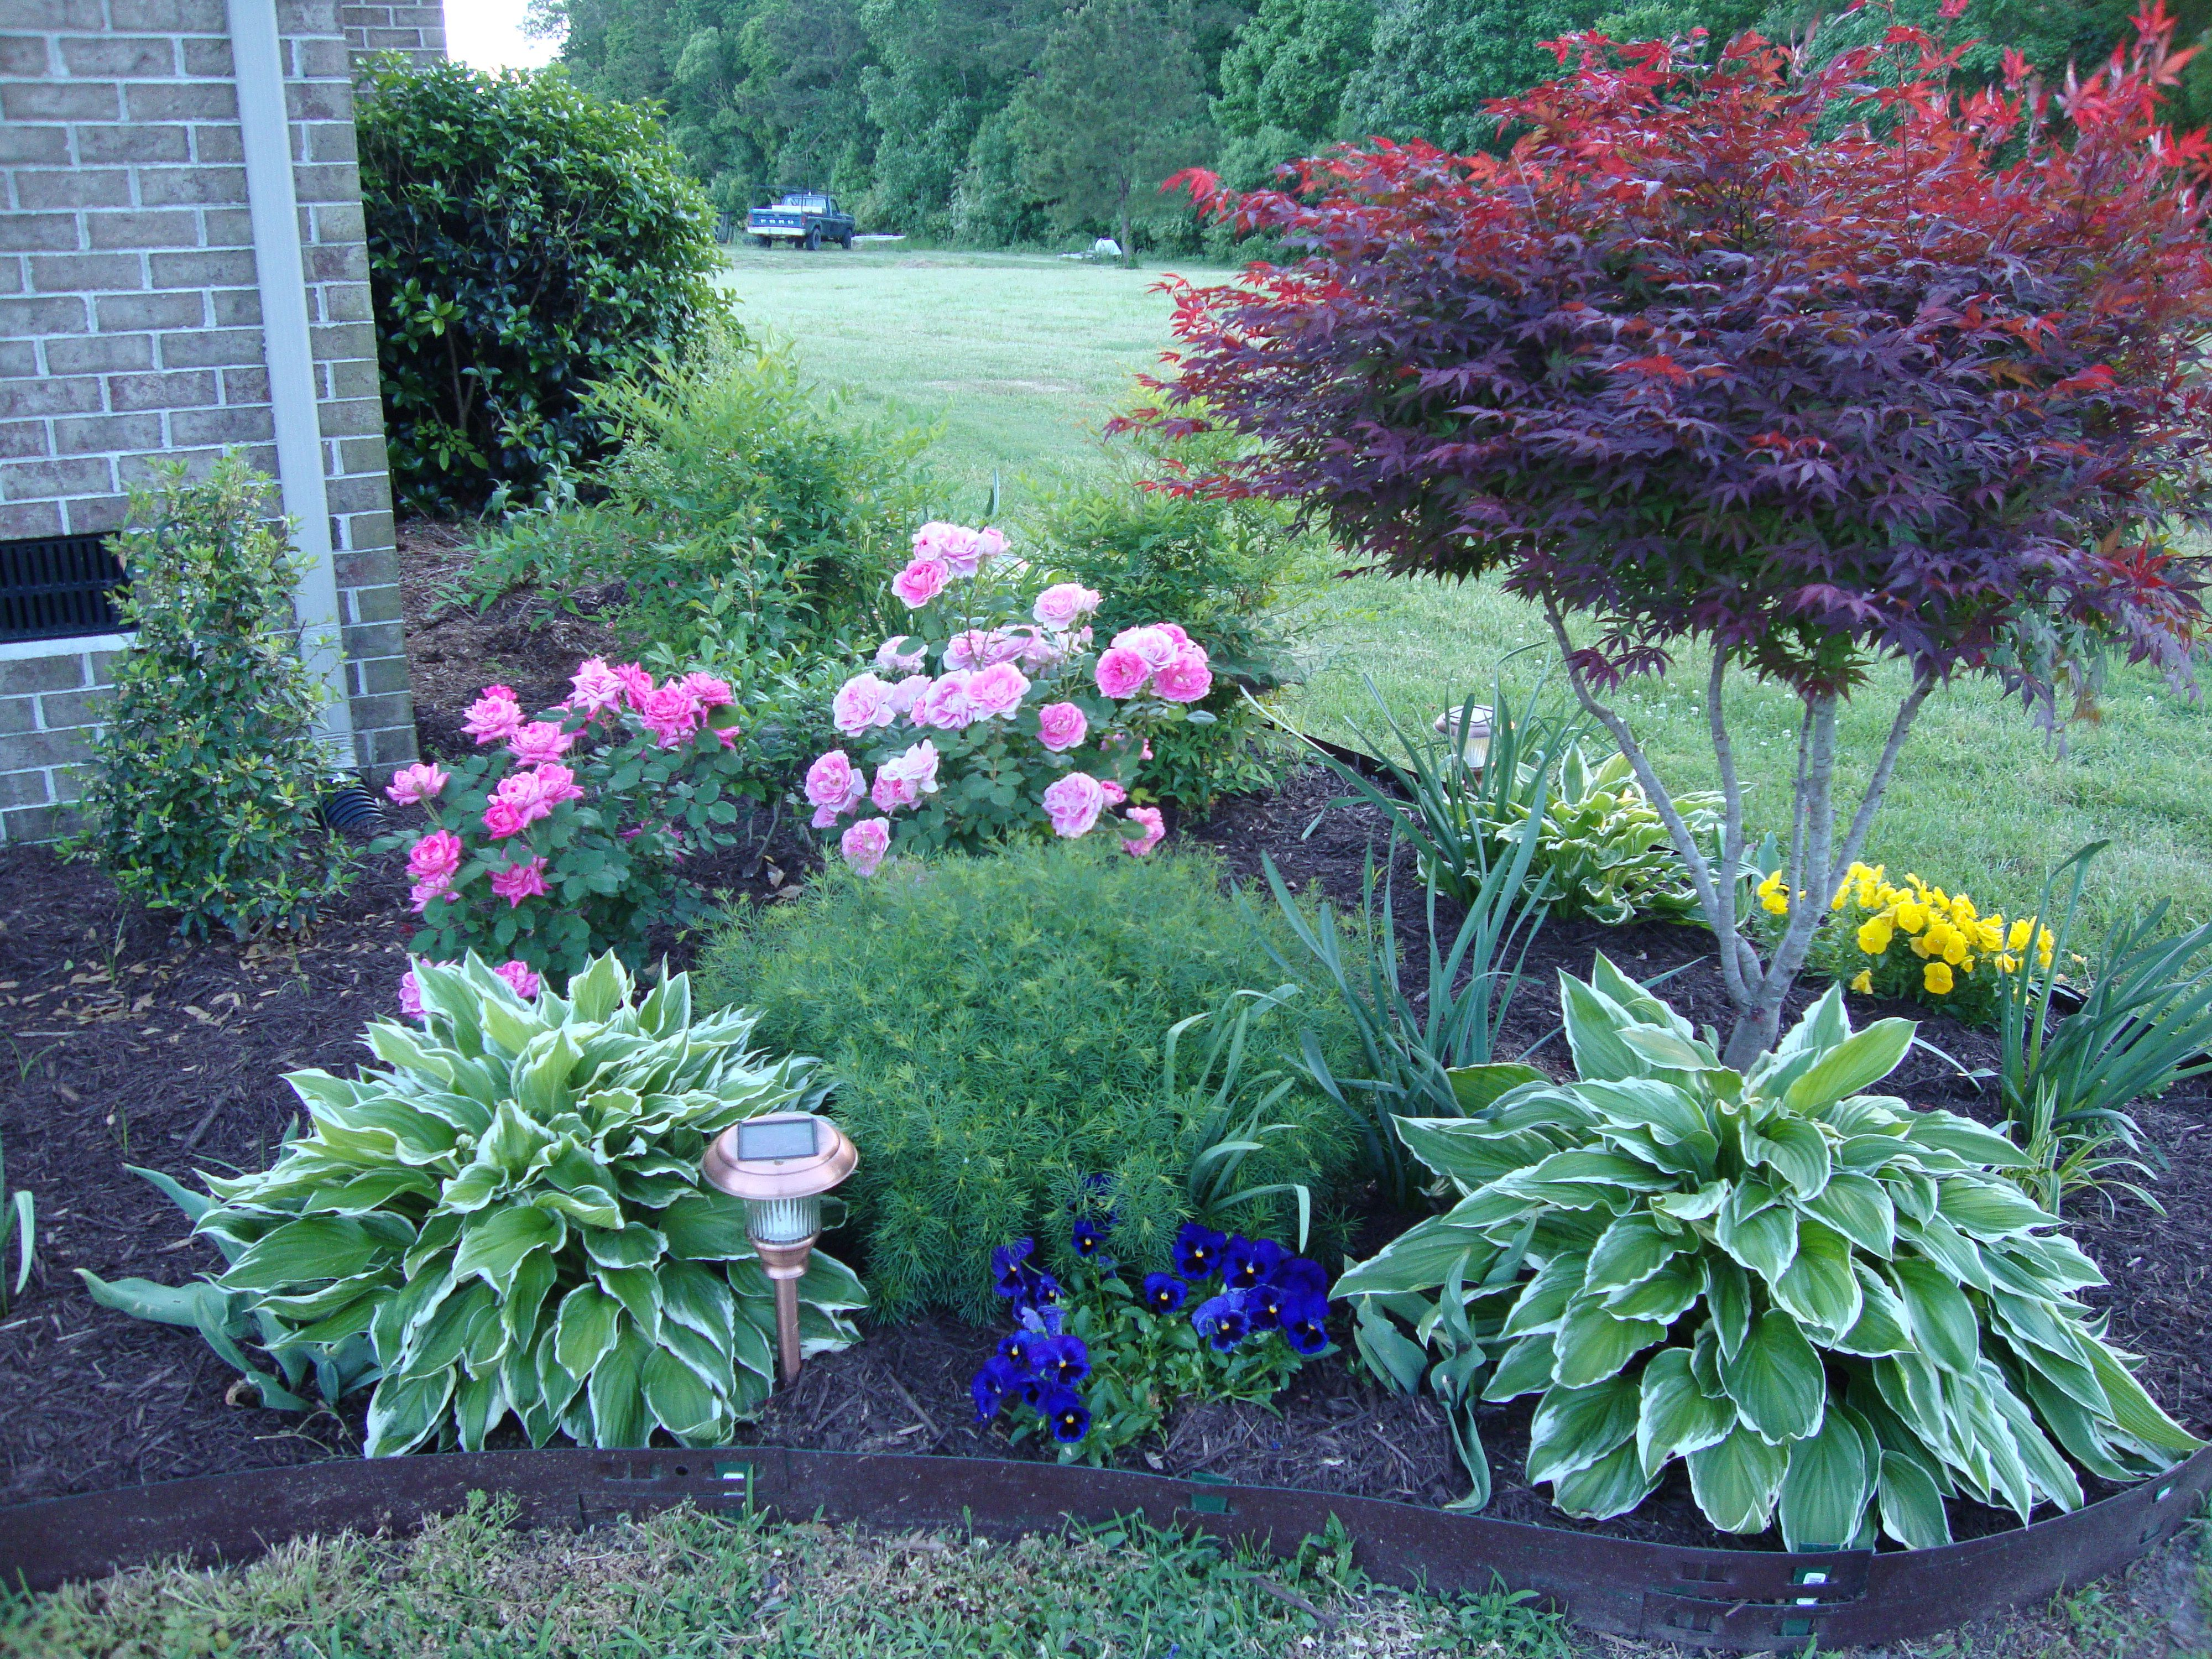 How to Effectively Use Colorful Plants and Flowers in Your